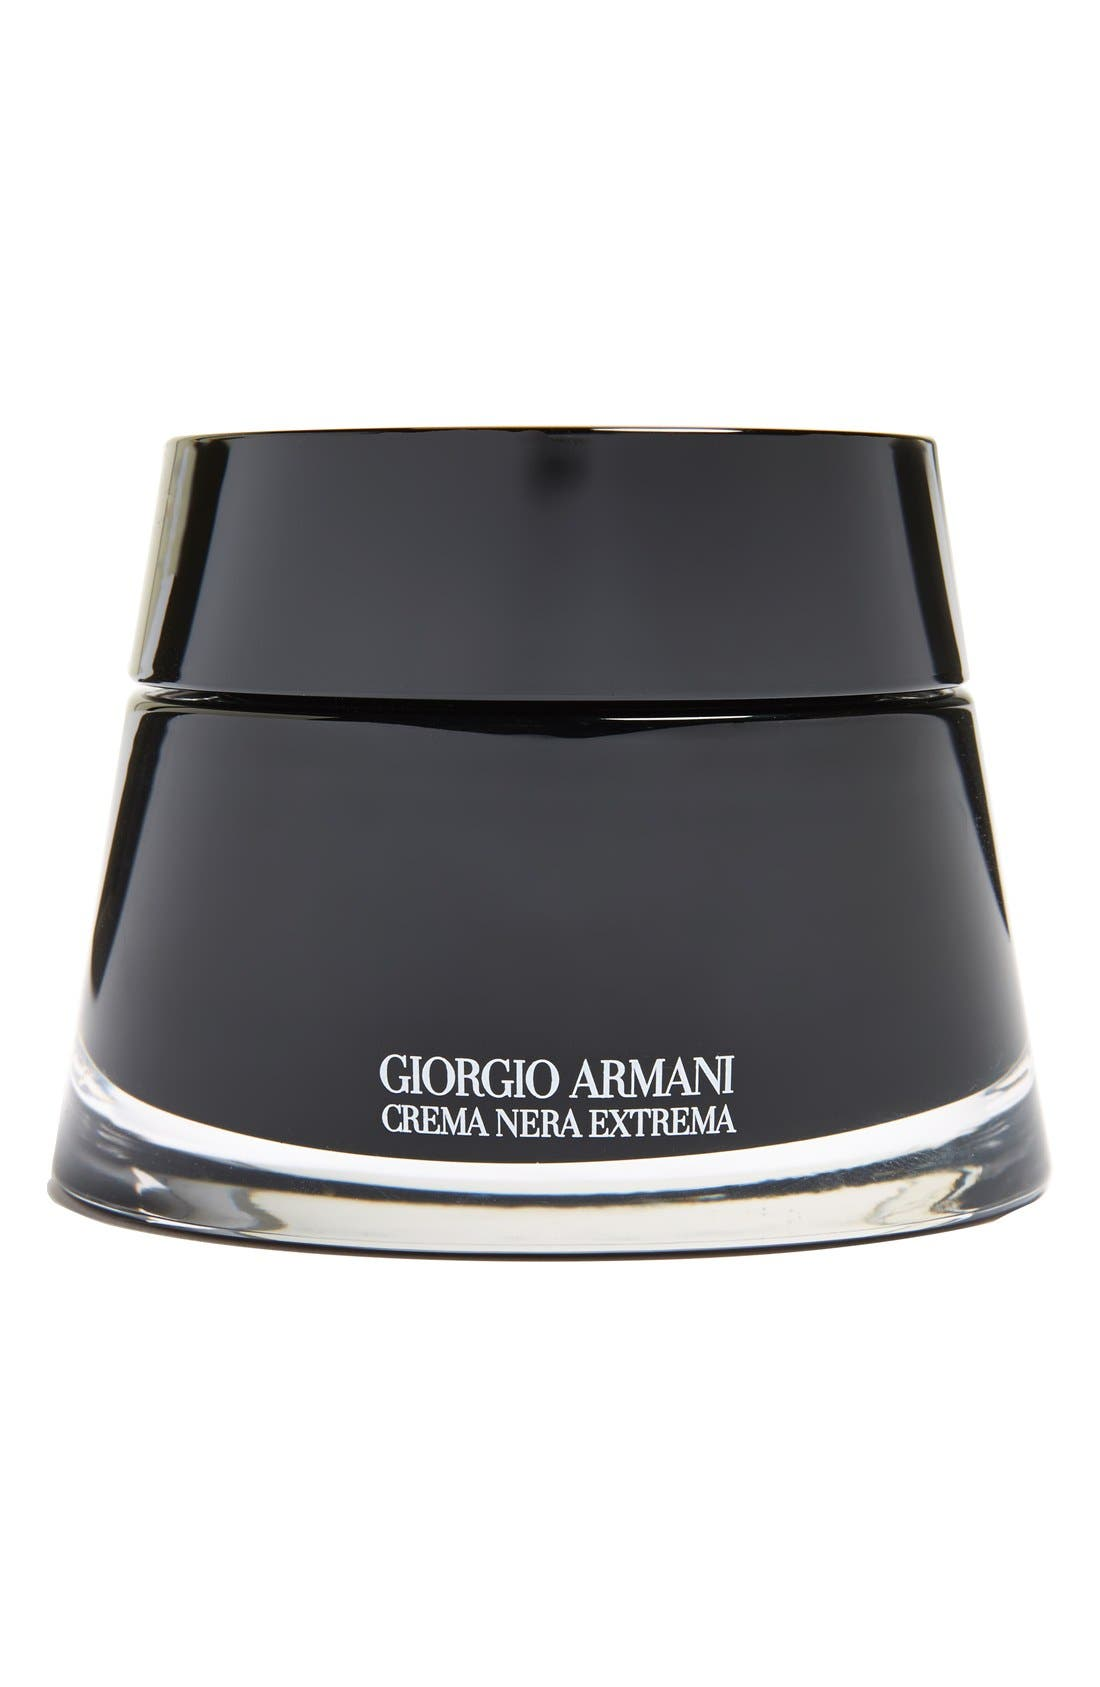 Giorgio Armani Crema Nera Extrema Light Cream